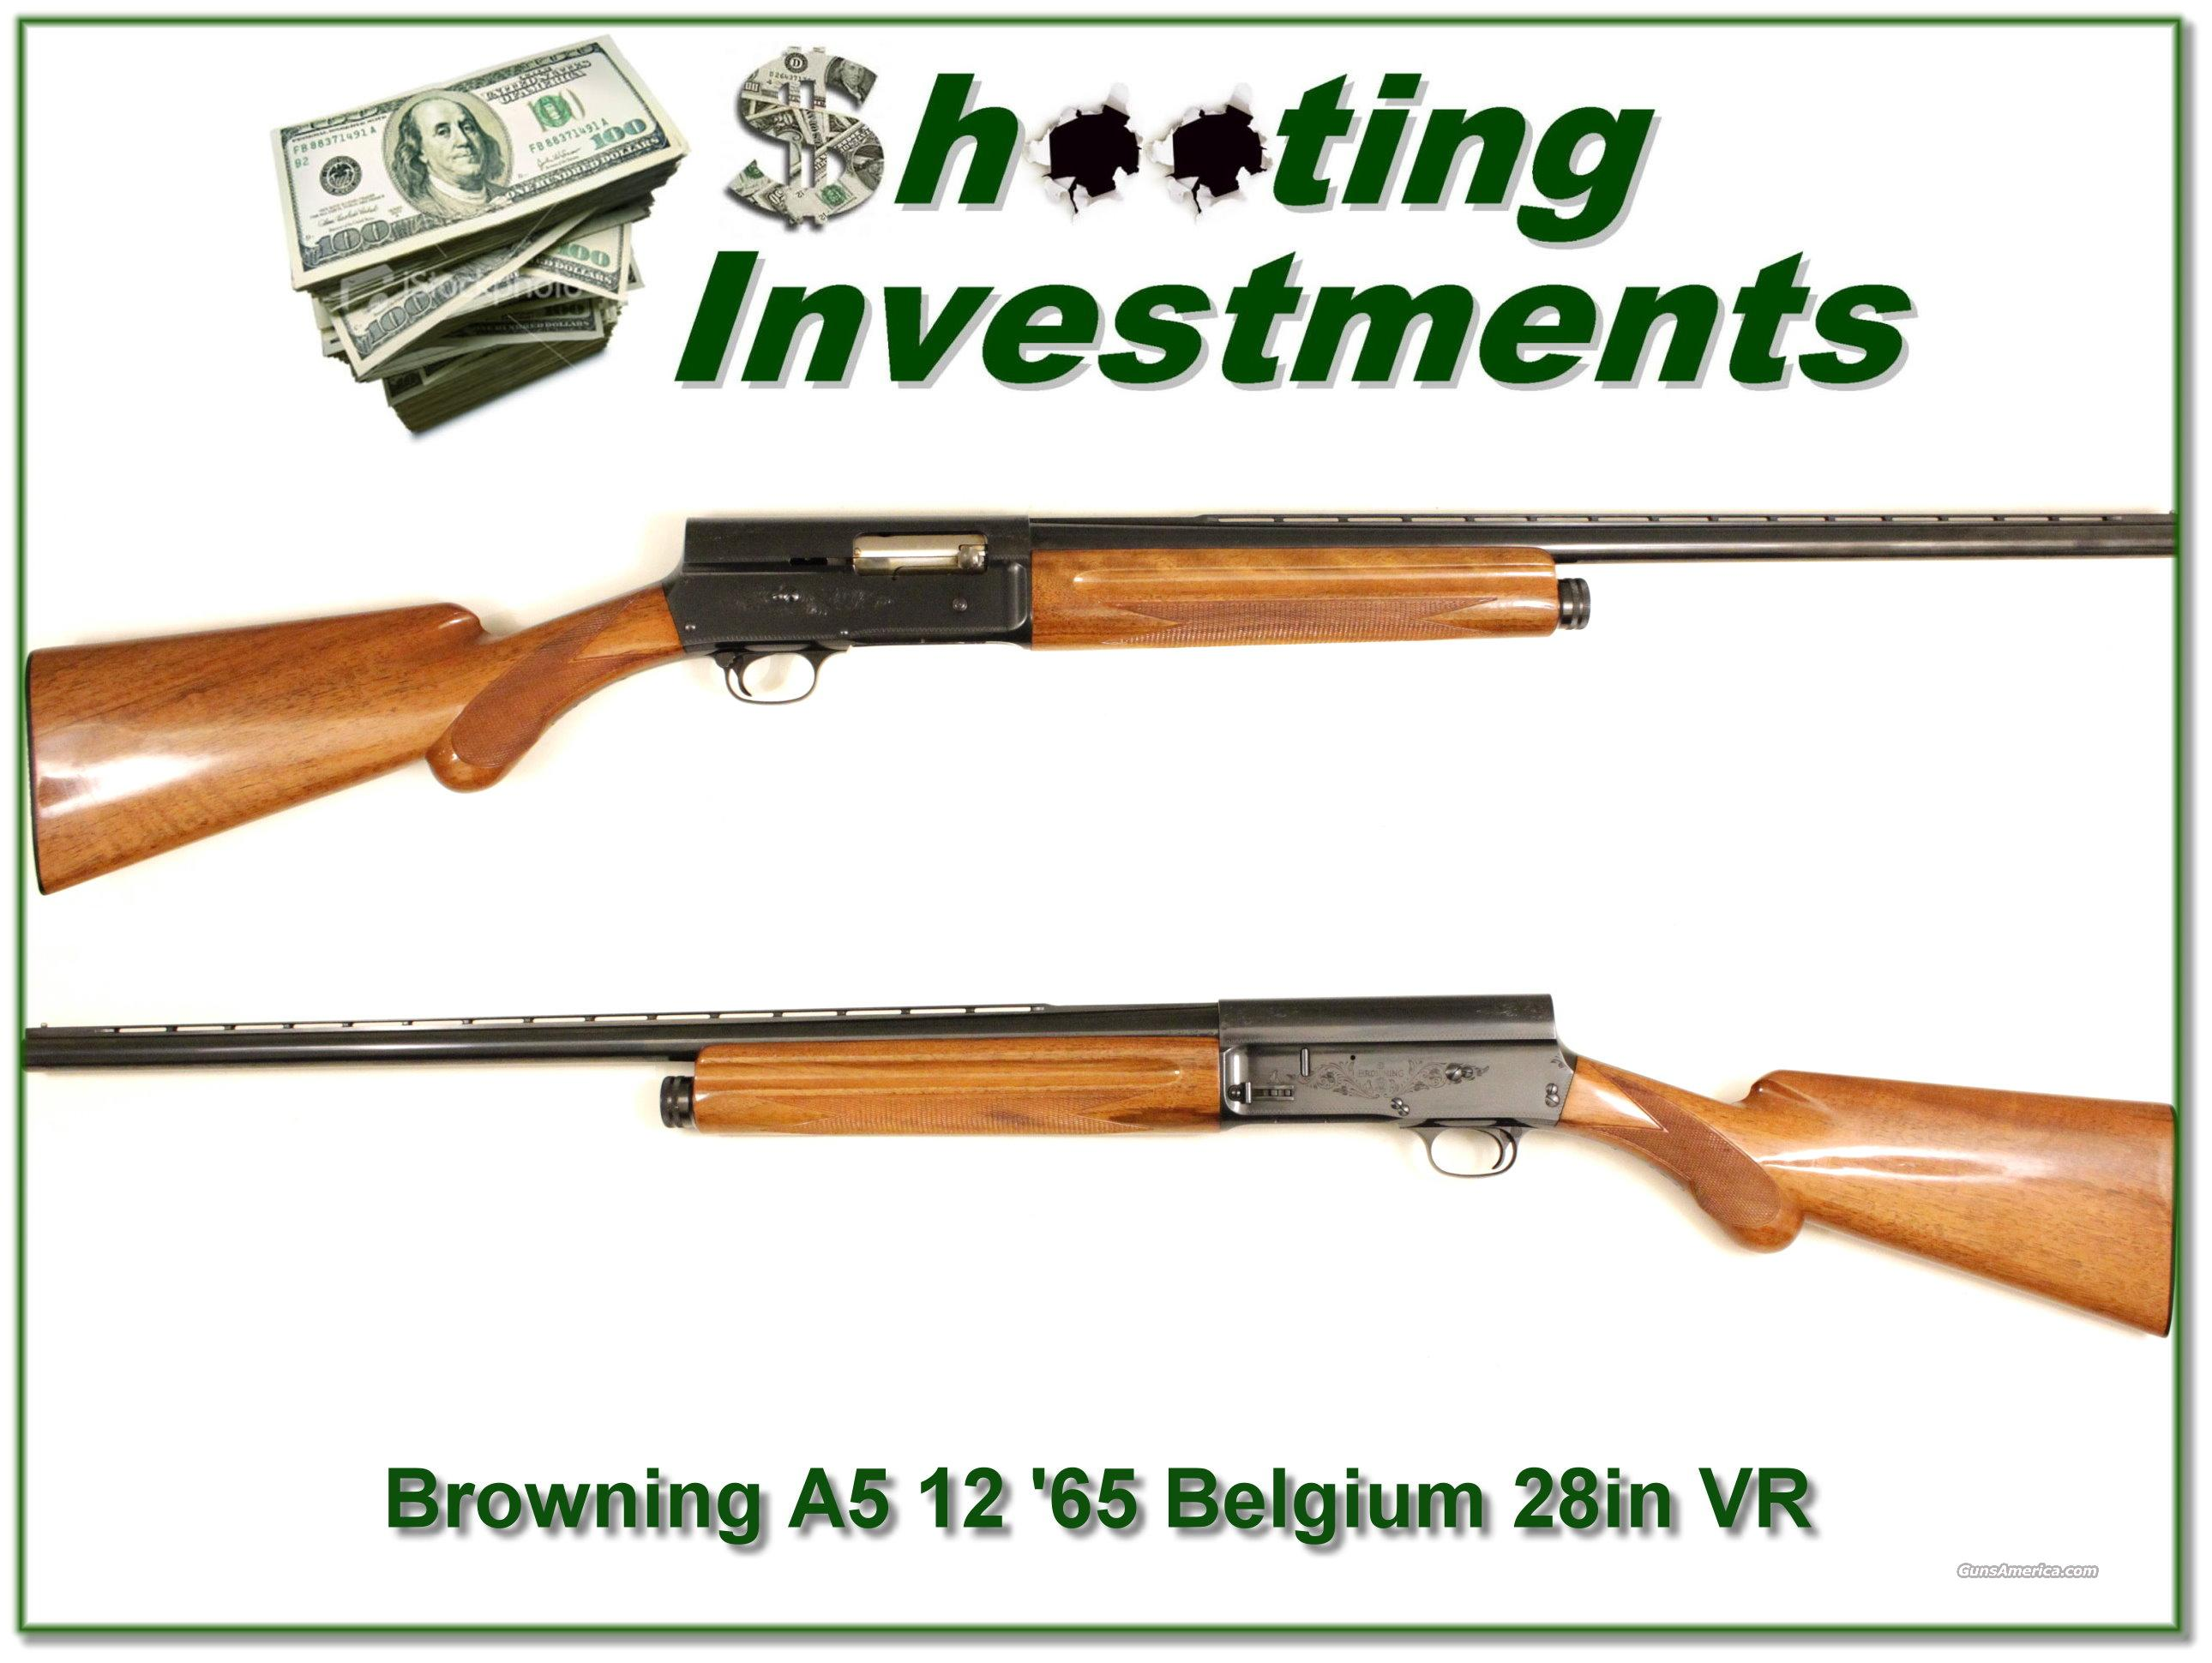 Browning A5 12 65 Belgium Like New!  Guns > Shotguns > Browning Shotguns > Autoloaders > Hunting